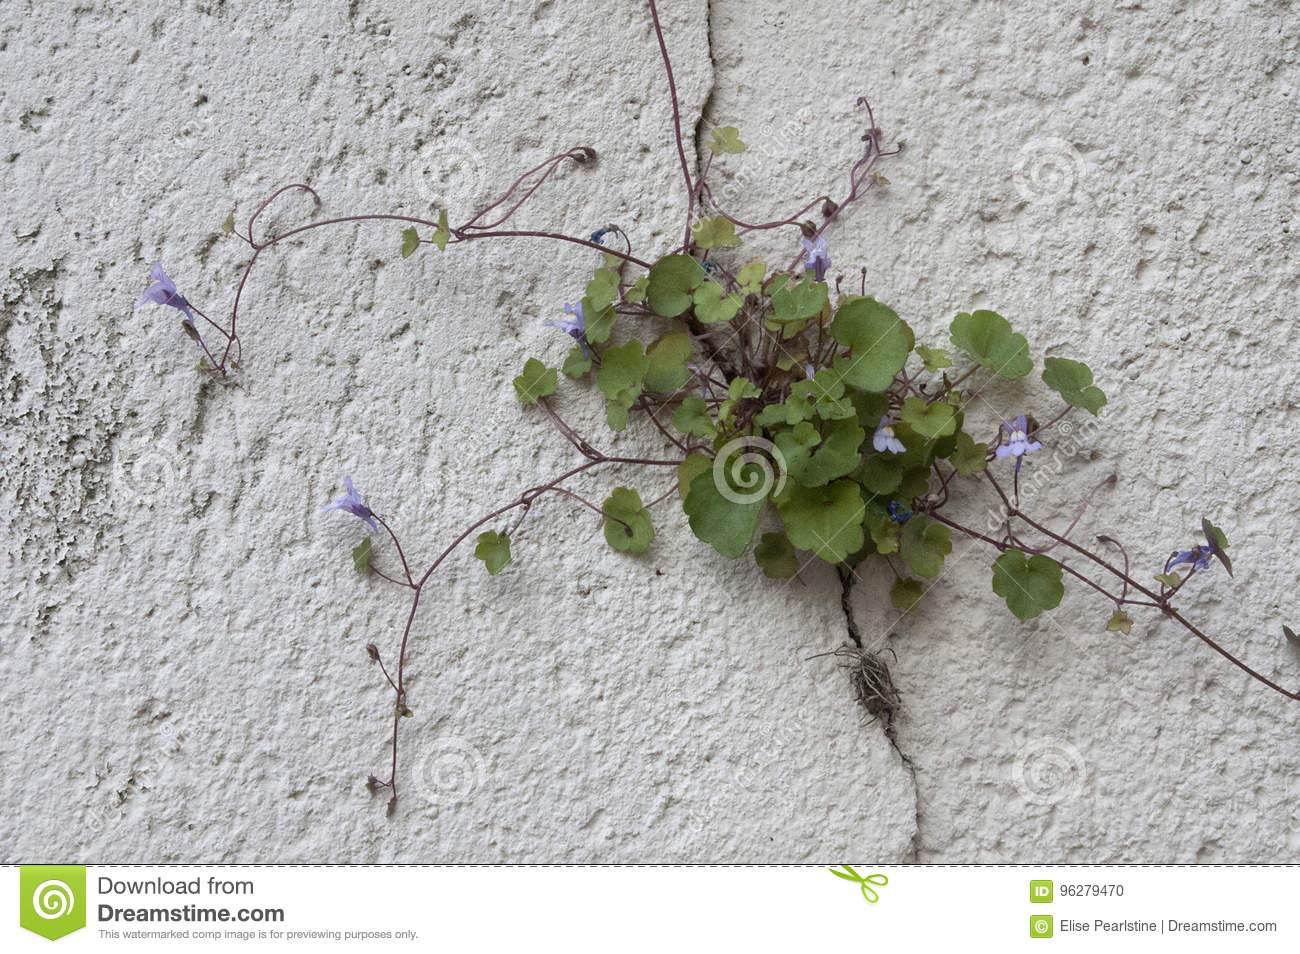 French Stone Wall In Provence With Vining Purple Tubular Flower